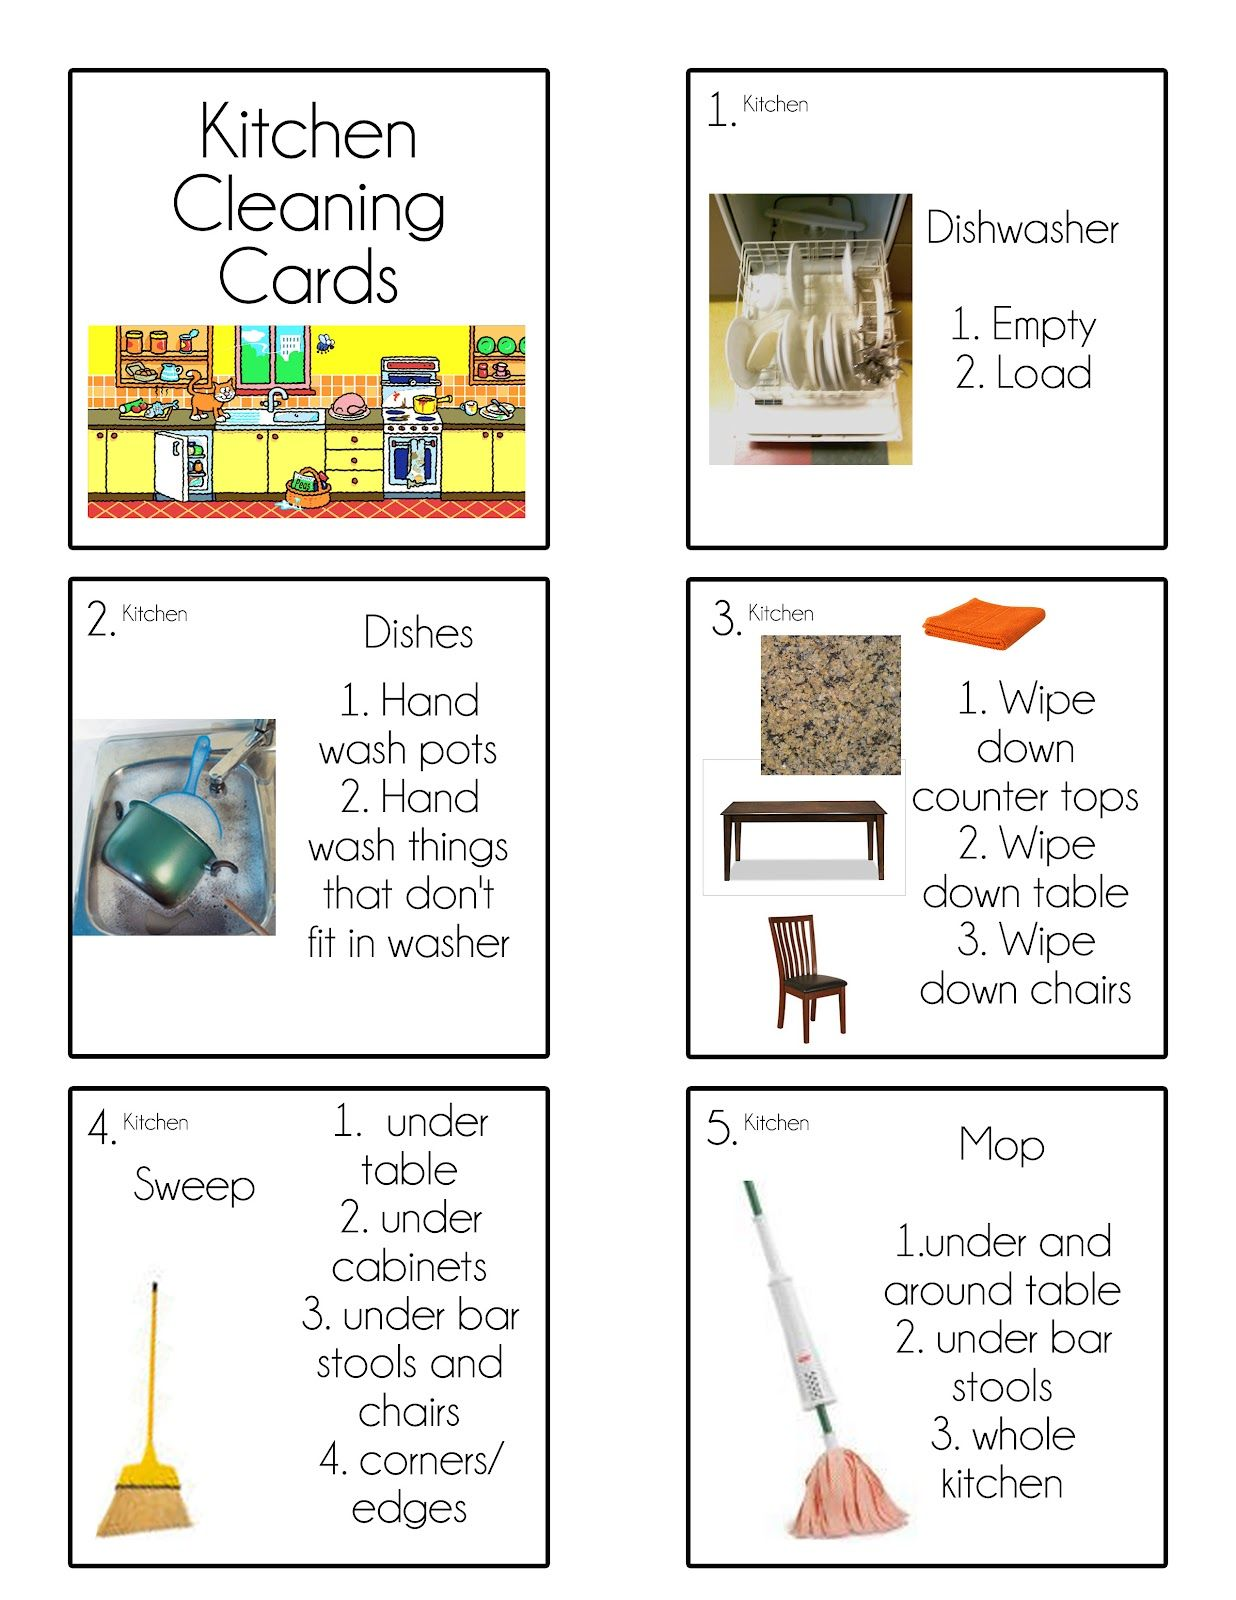 my chores 43 chores young children can do posted march 10, 2011 by rhonda franz tweet the quicker you can pass on chores to your offspring, the more responsibility they'll have, and the less you'll have to do make sure you are expecting great things from your children.